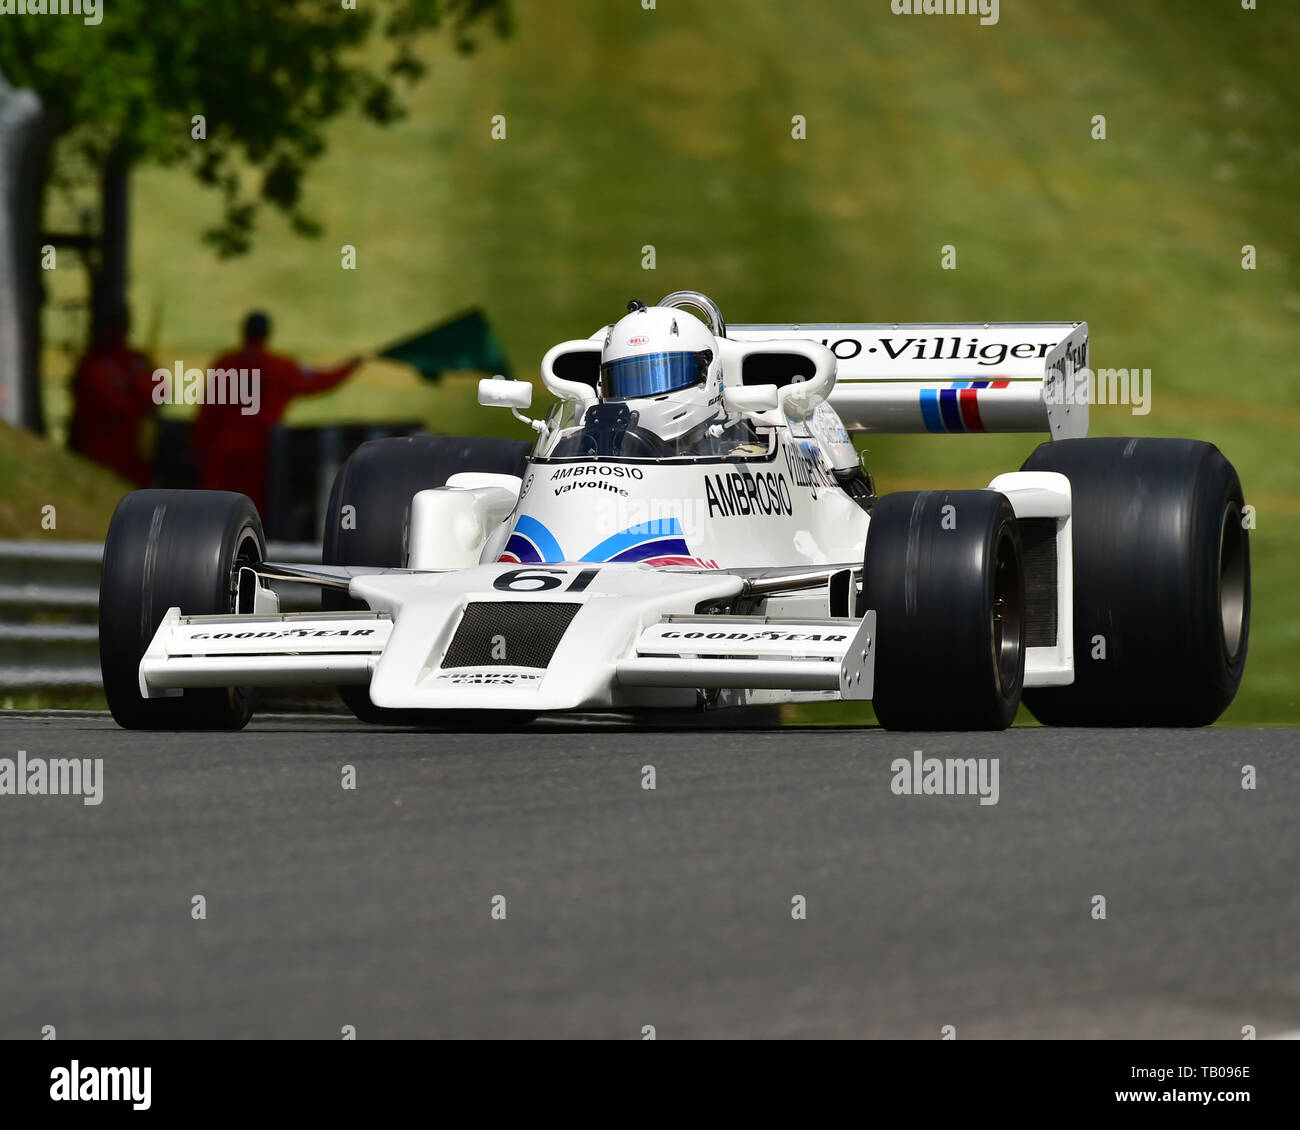 Jason Wright, Shadow DN8, FIA Masters Historic Formula One Championship, Masters Historic Festival, Brands Hatch, May 2019. Brands Hatch, classic cars - Stock Image